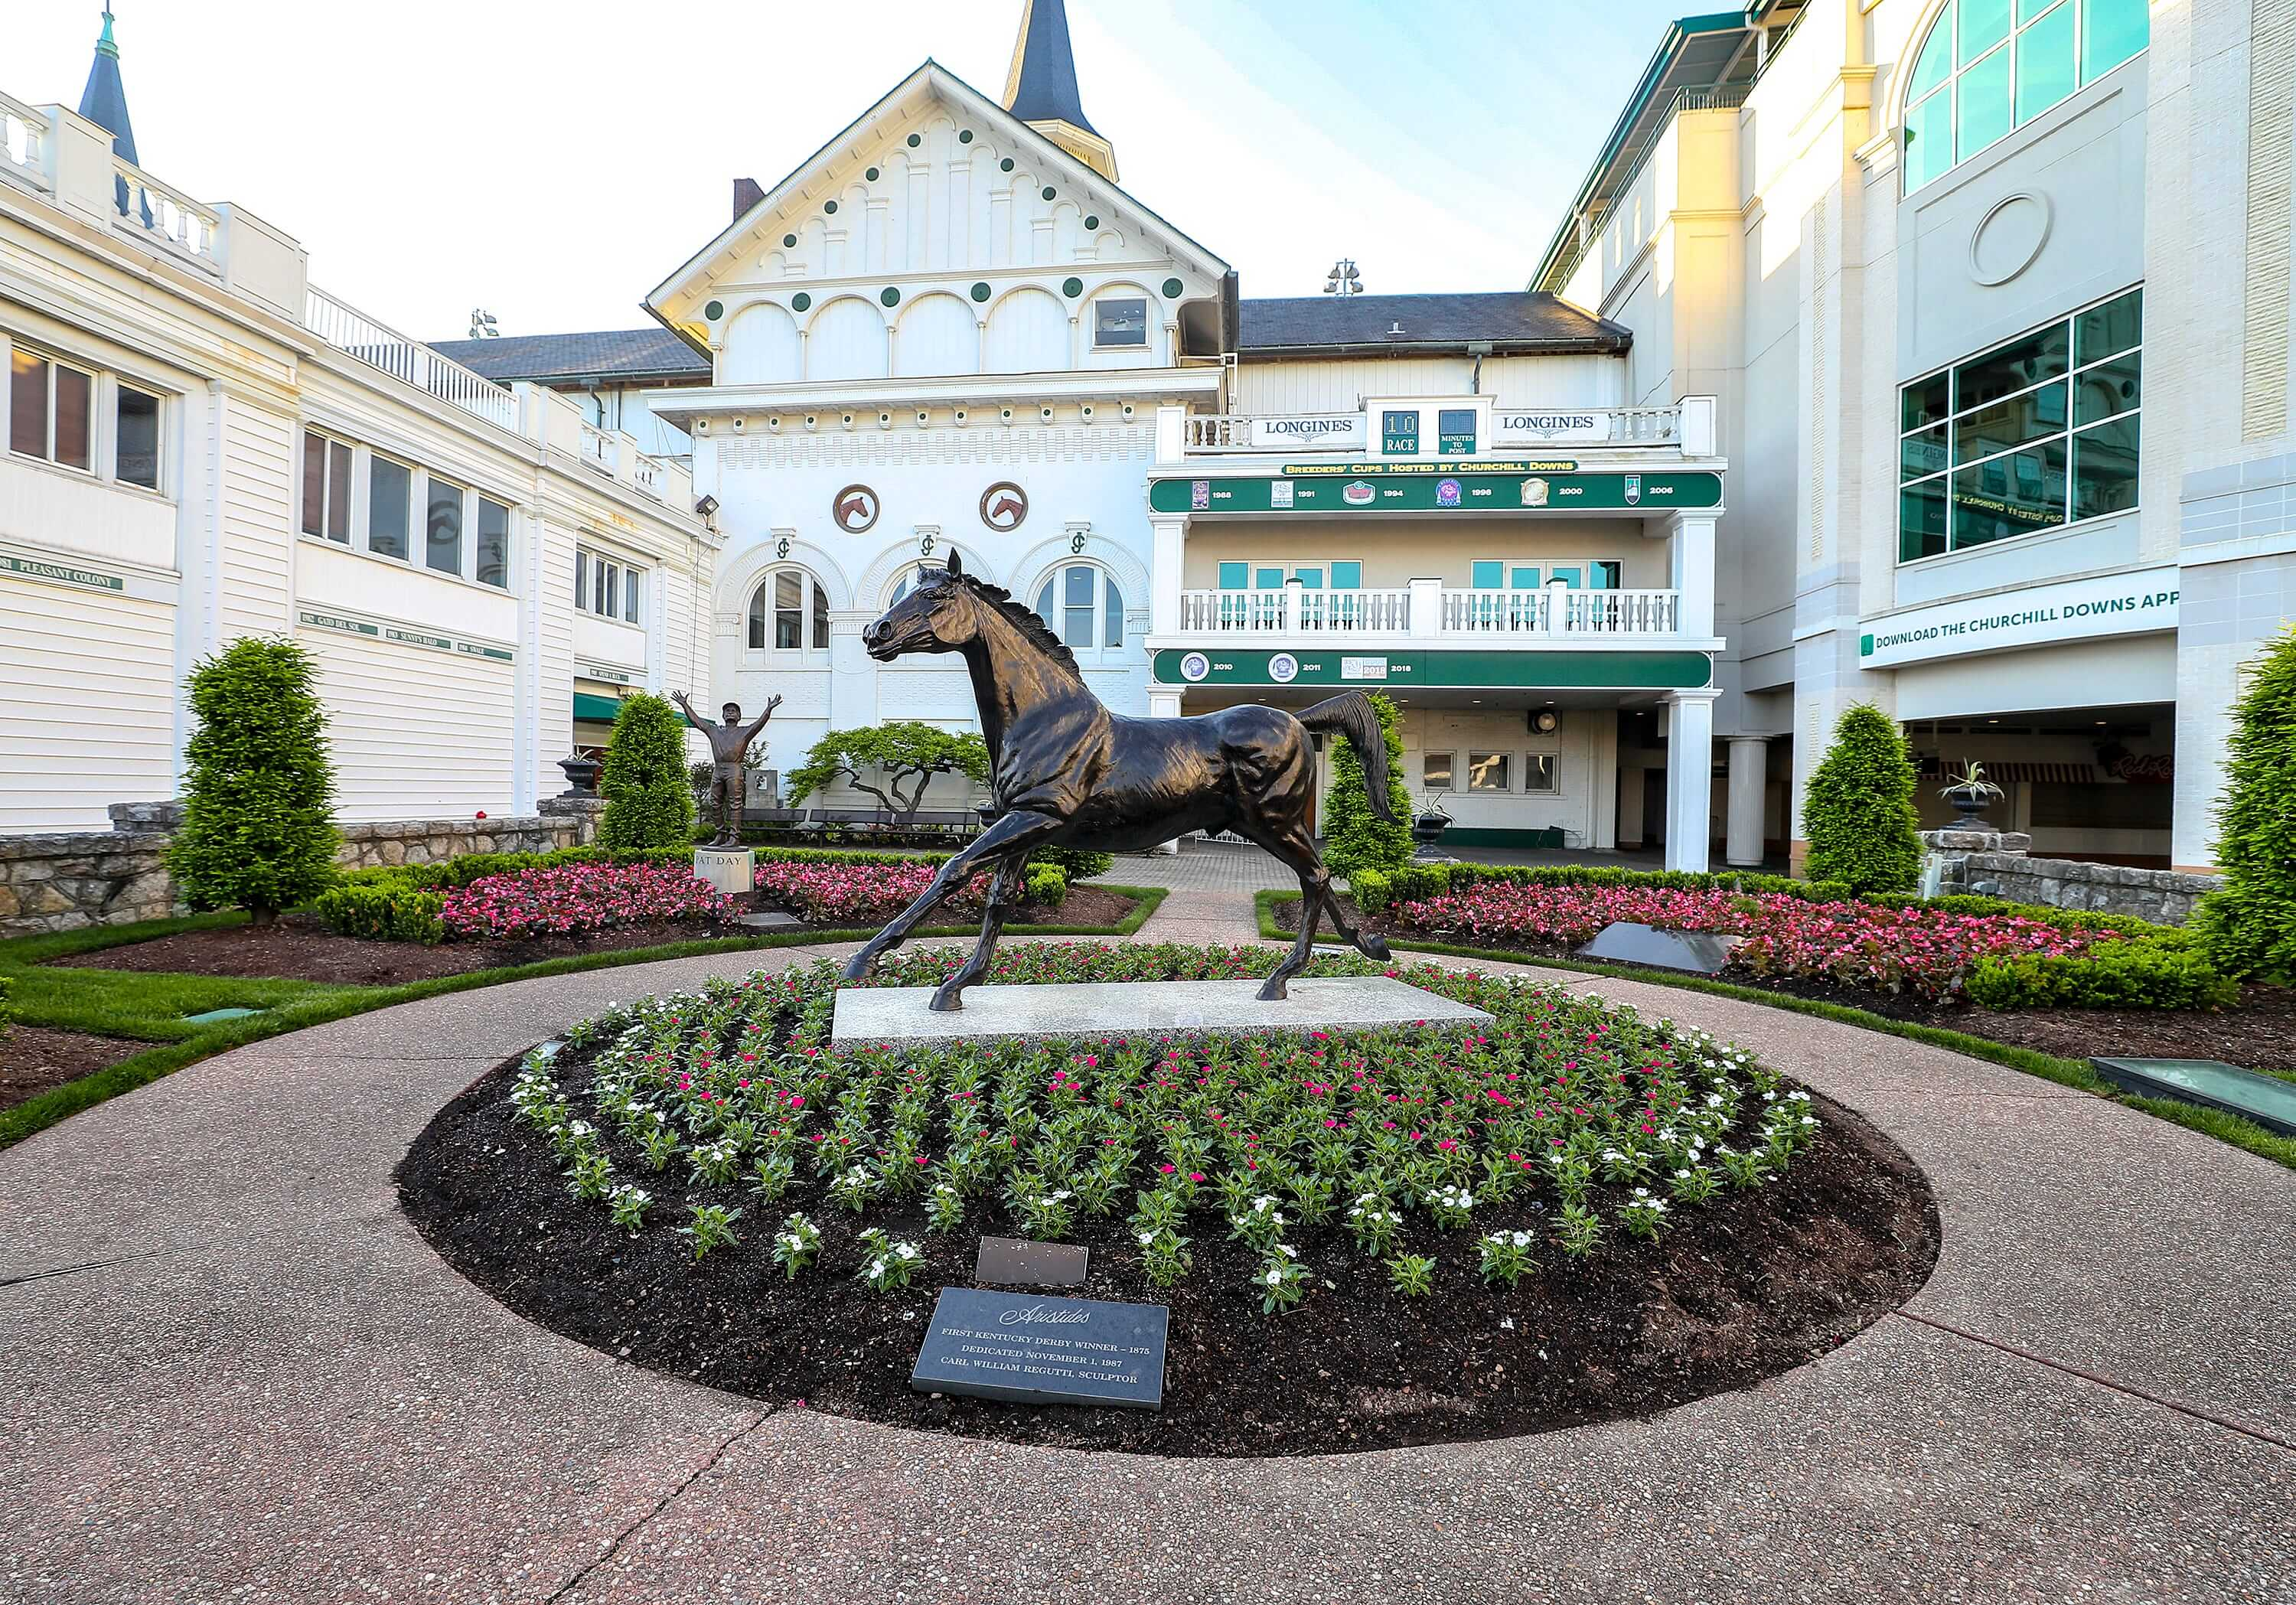 How To Bet - Trusted Kentucky Derby Betting Sites in 2021